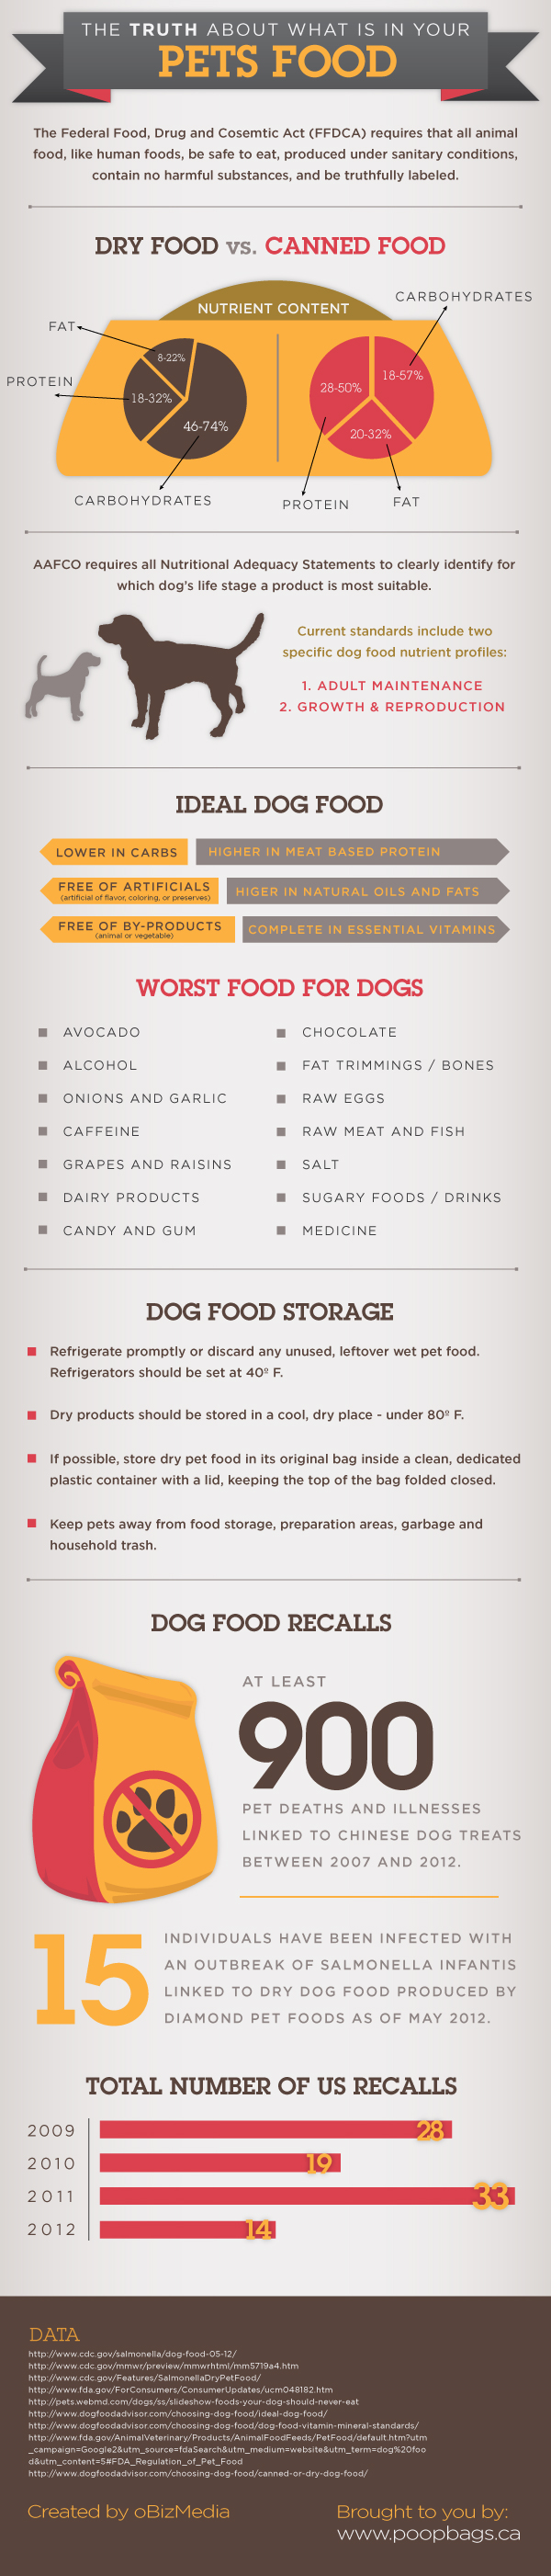 the-truth-about-dog-food.jpg